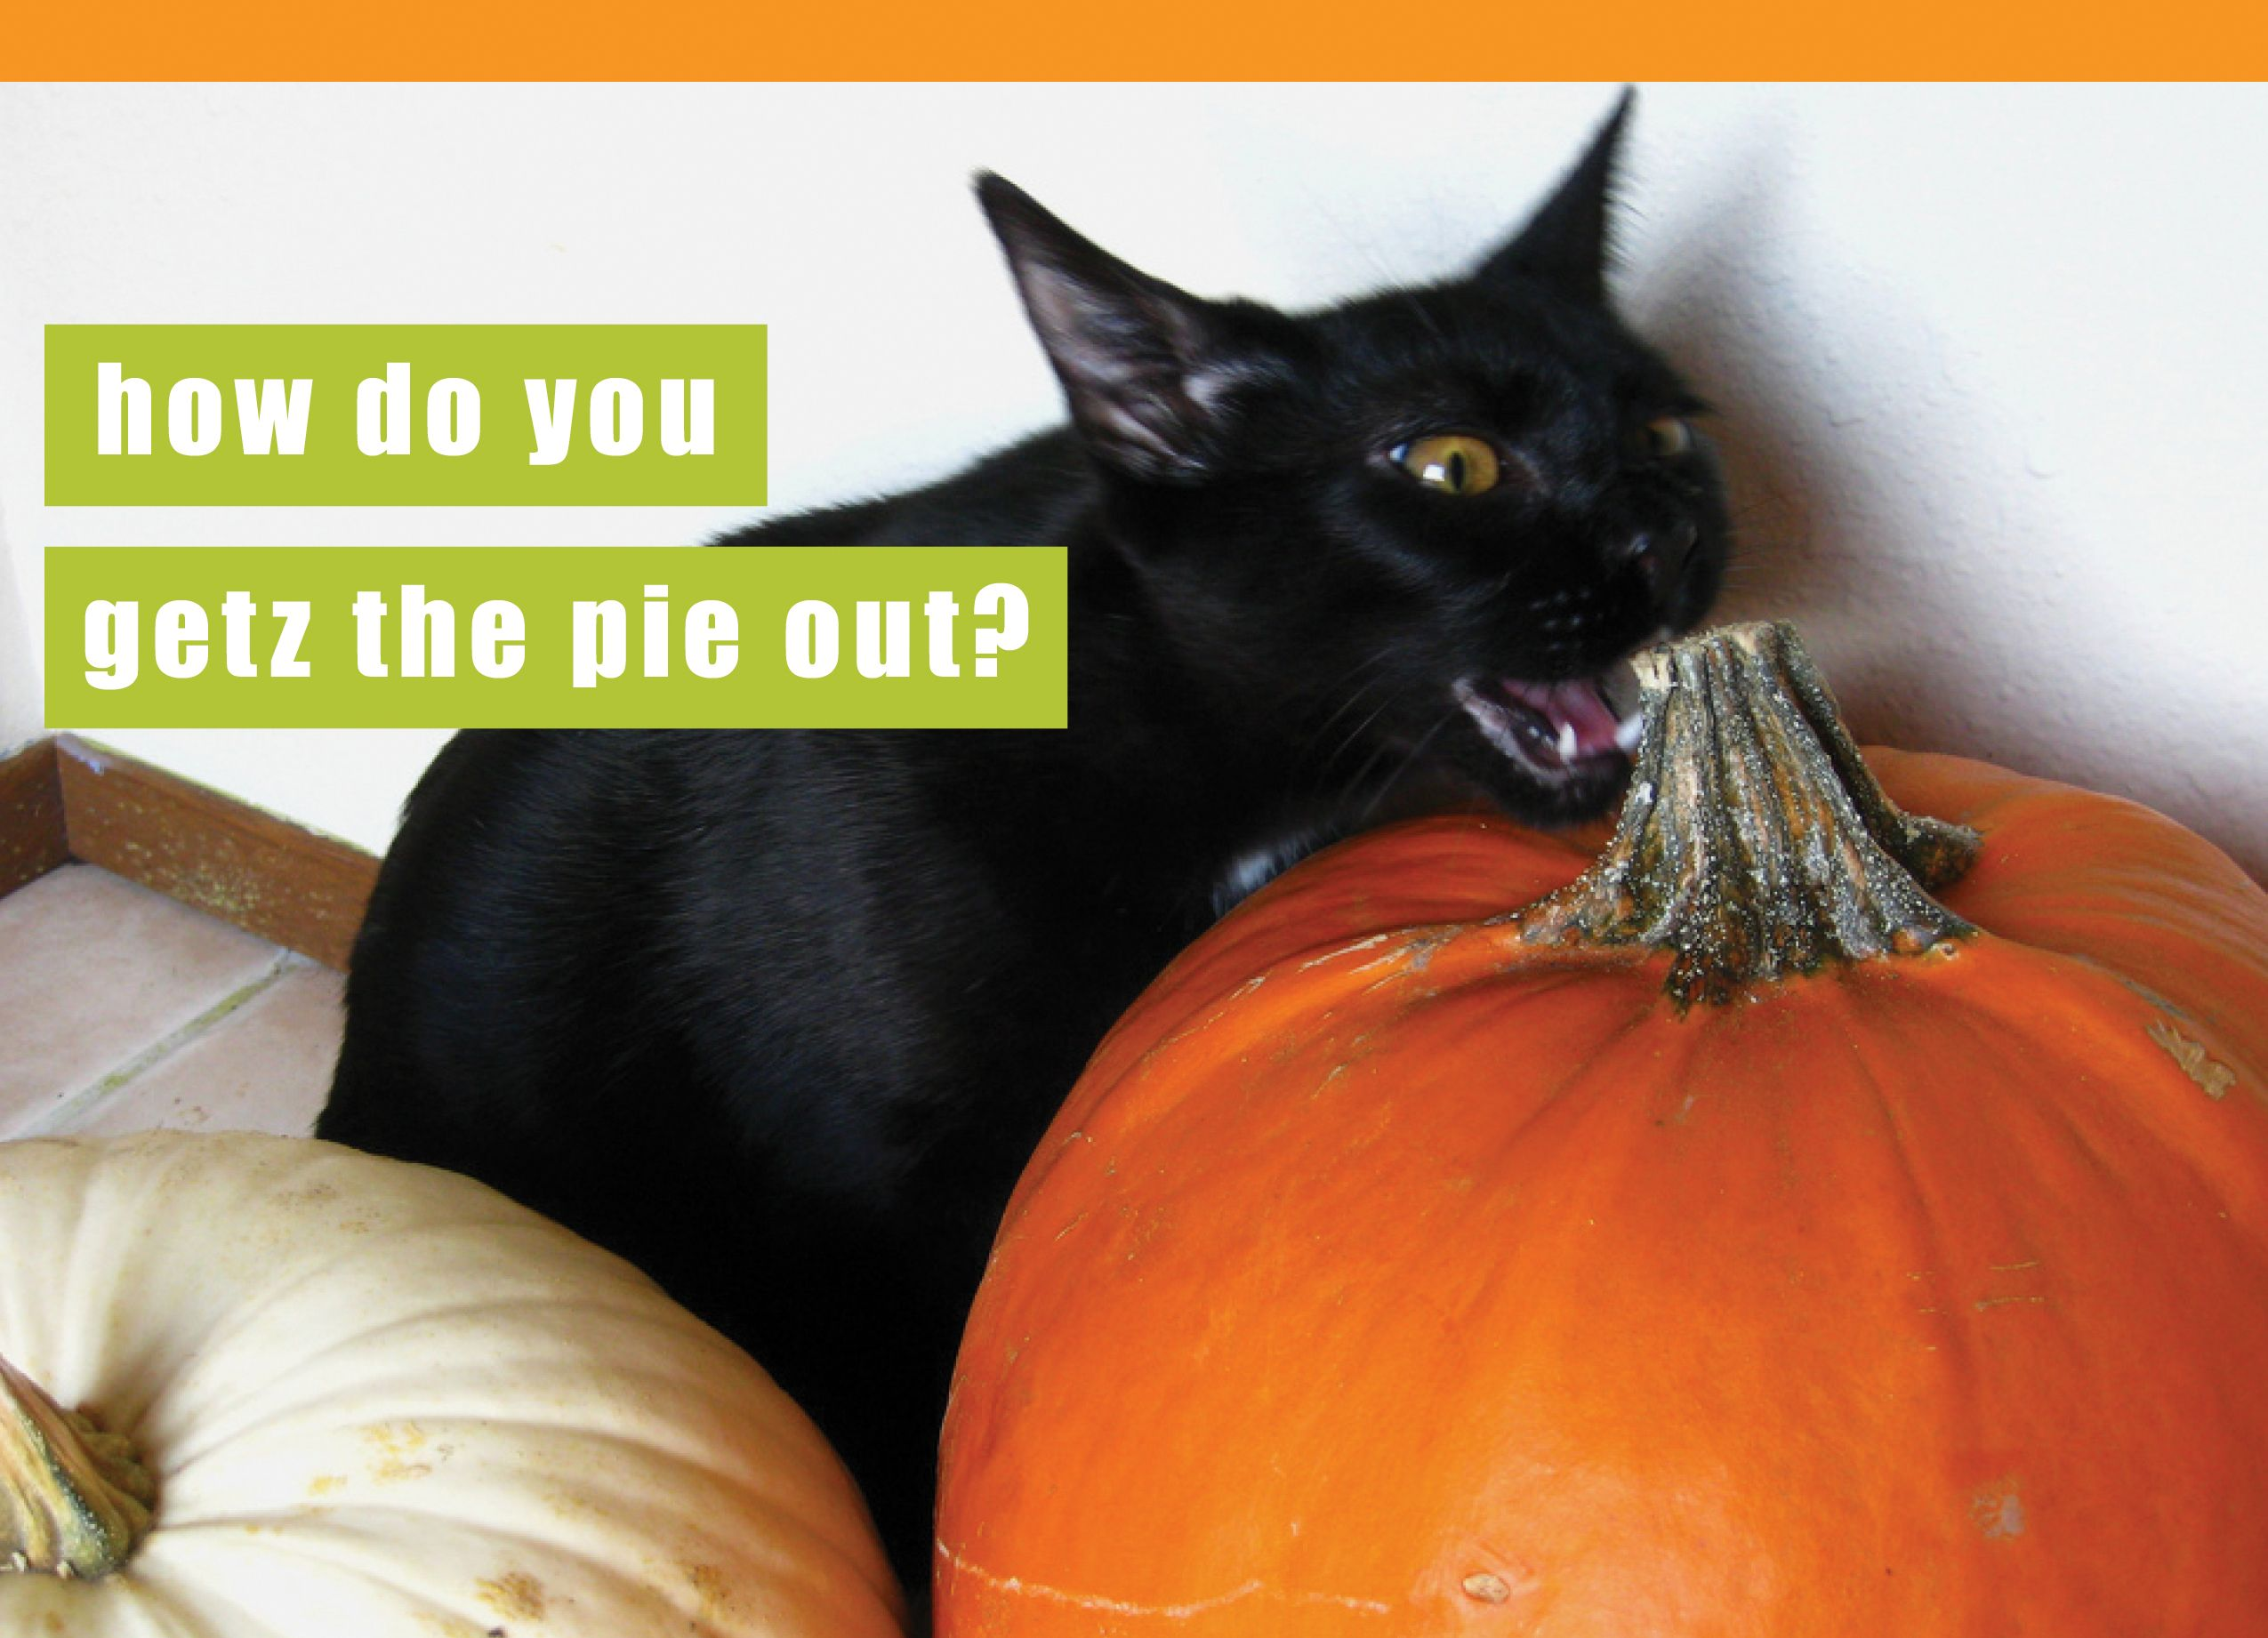 Cat wants his pumpkin pie, from I Can Has Cheezburger